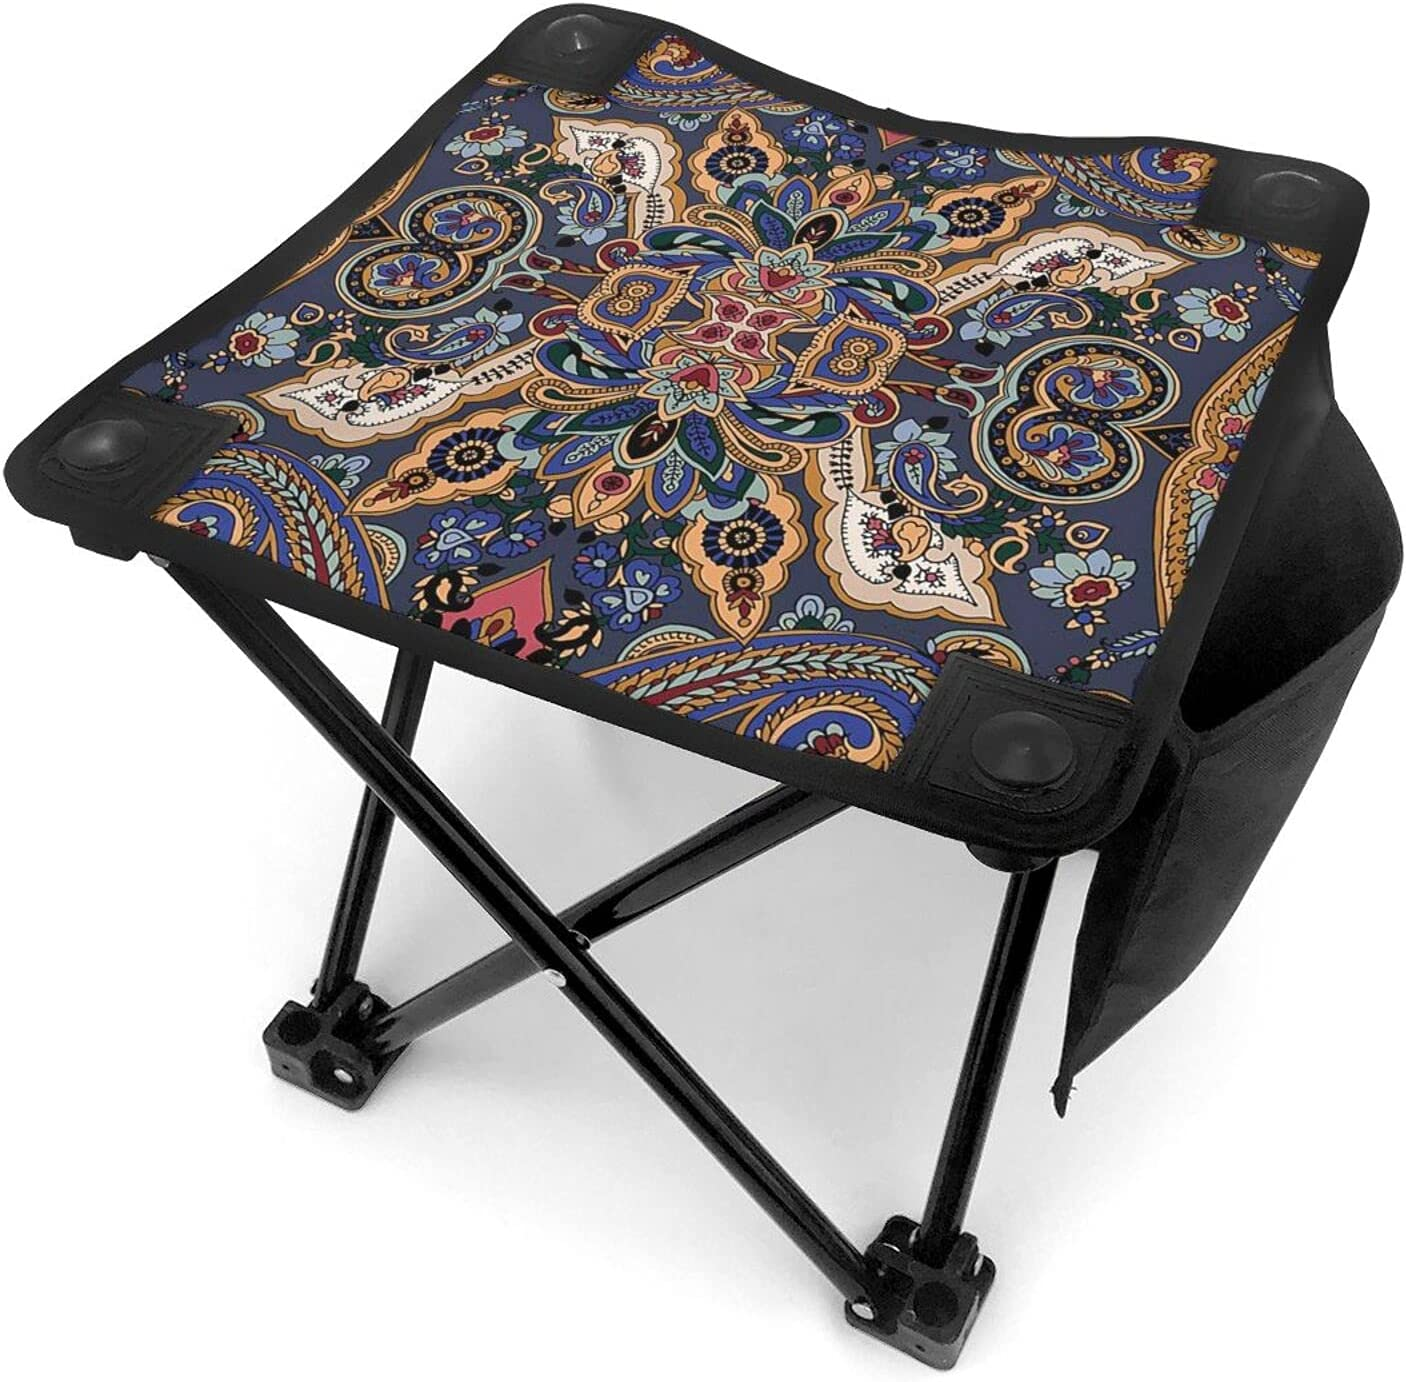 cheap Paisley Moroccan Florets Slavic Lightweight Product Small Foldin Effects